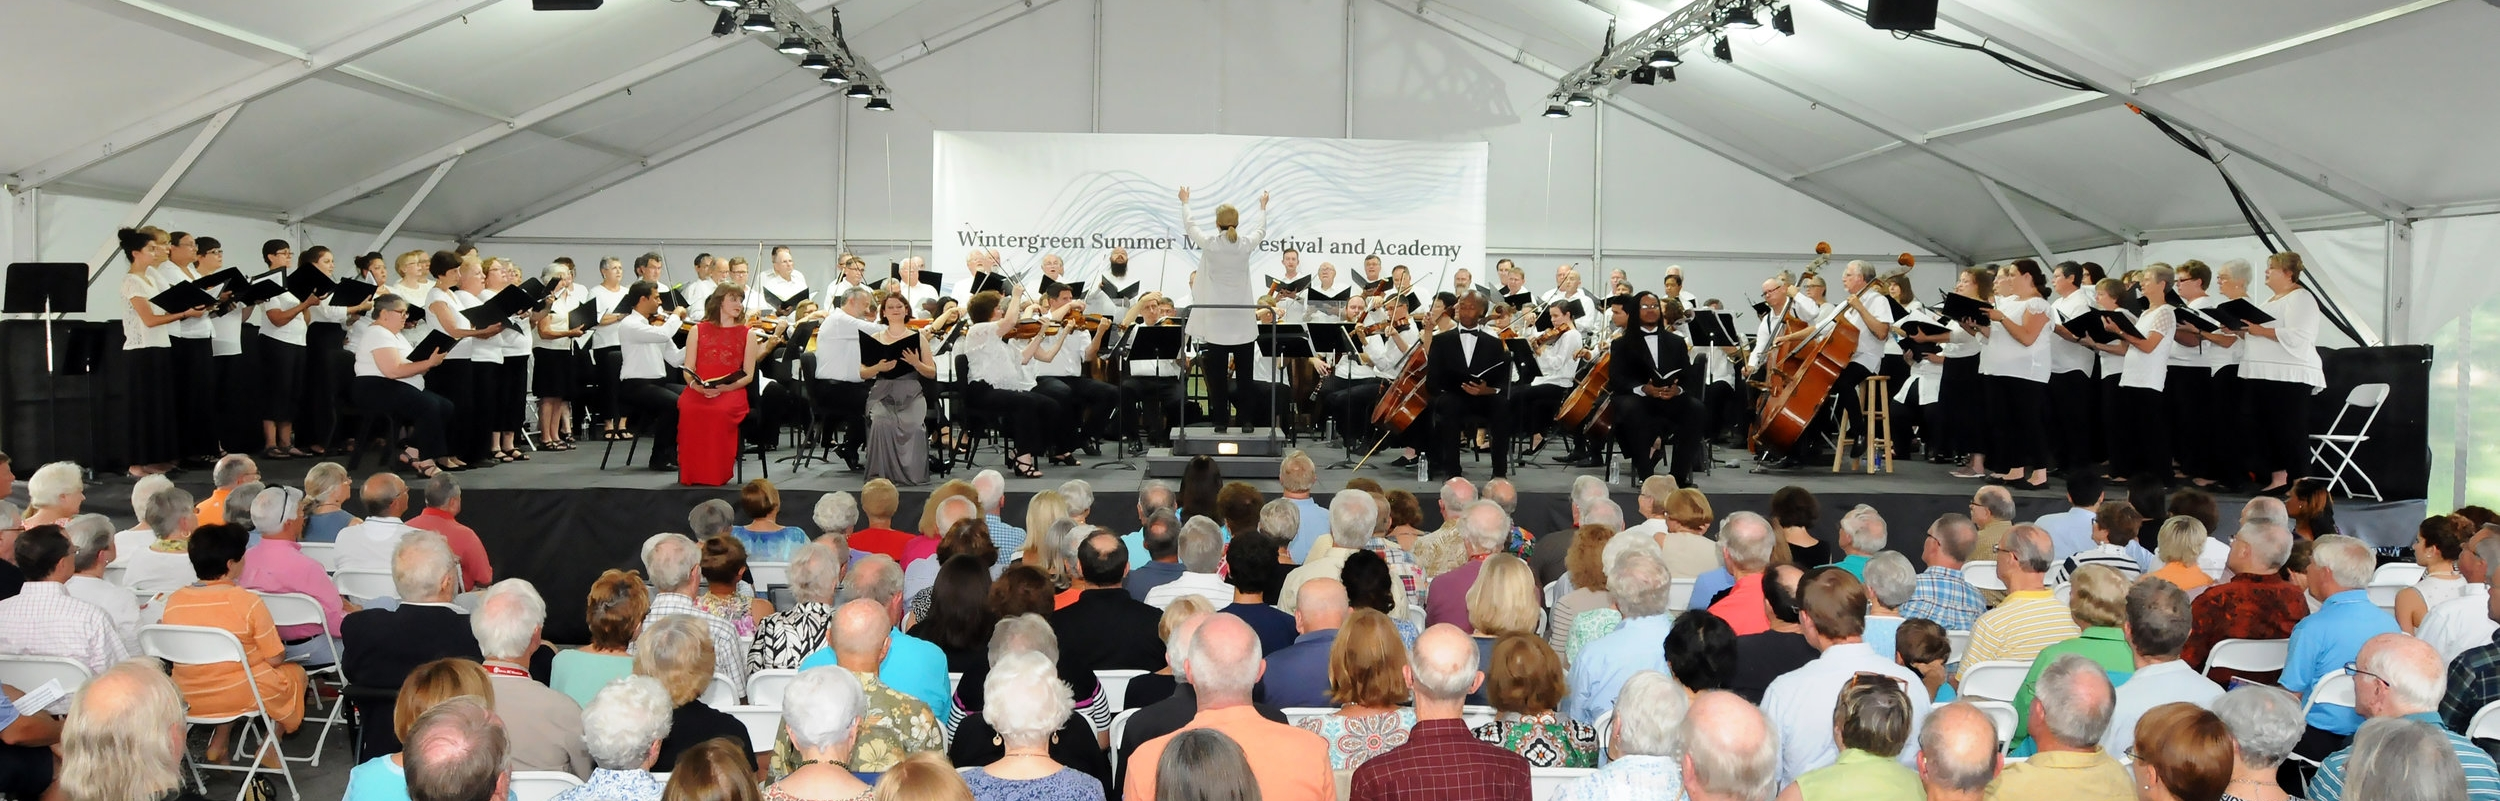 Sing with Us! 2017. More than 80 singers came from as far as Florida and Chicago to sing Mozart's Requiem on top of beautiful Wintergreen Mountain.